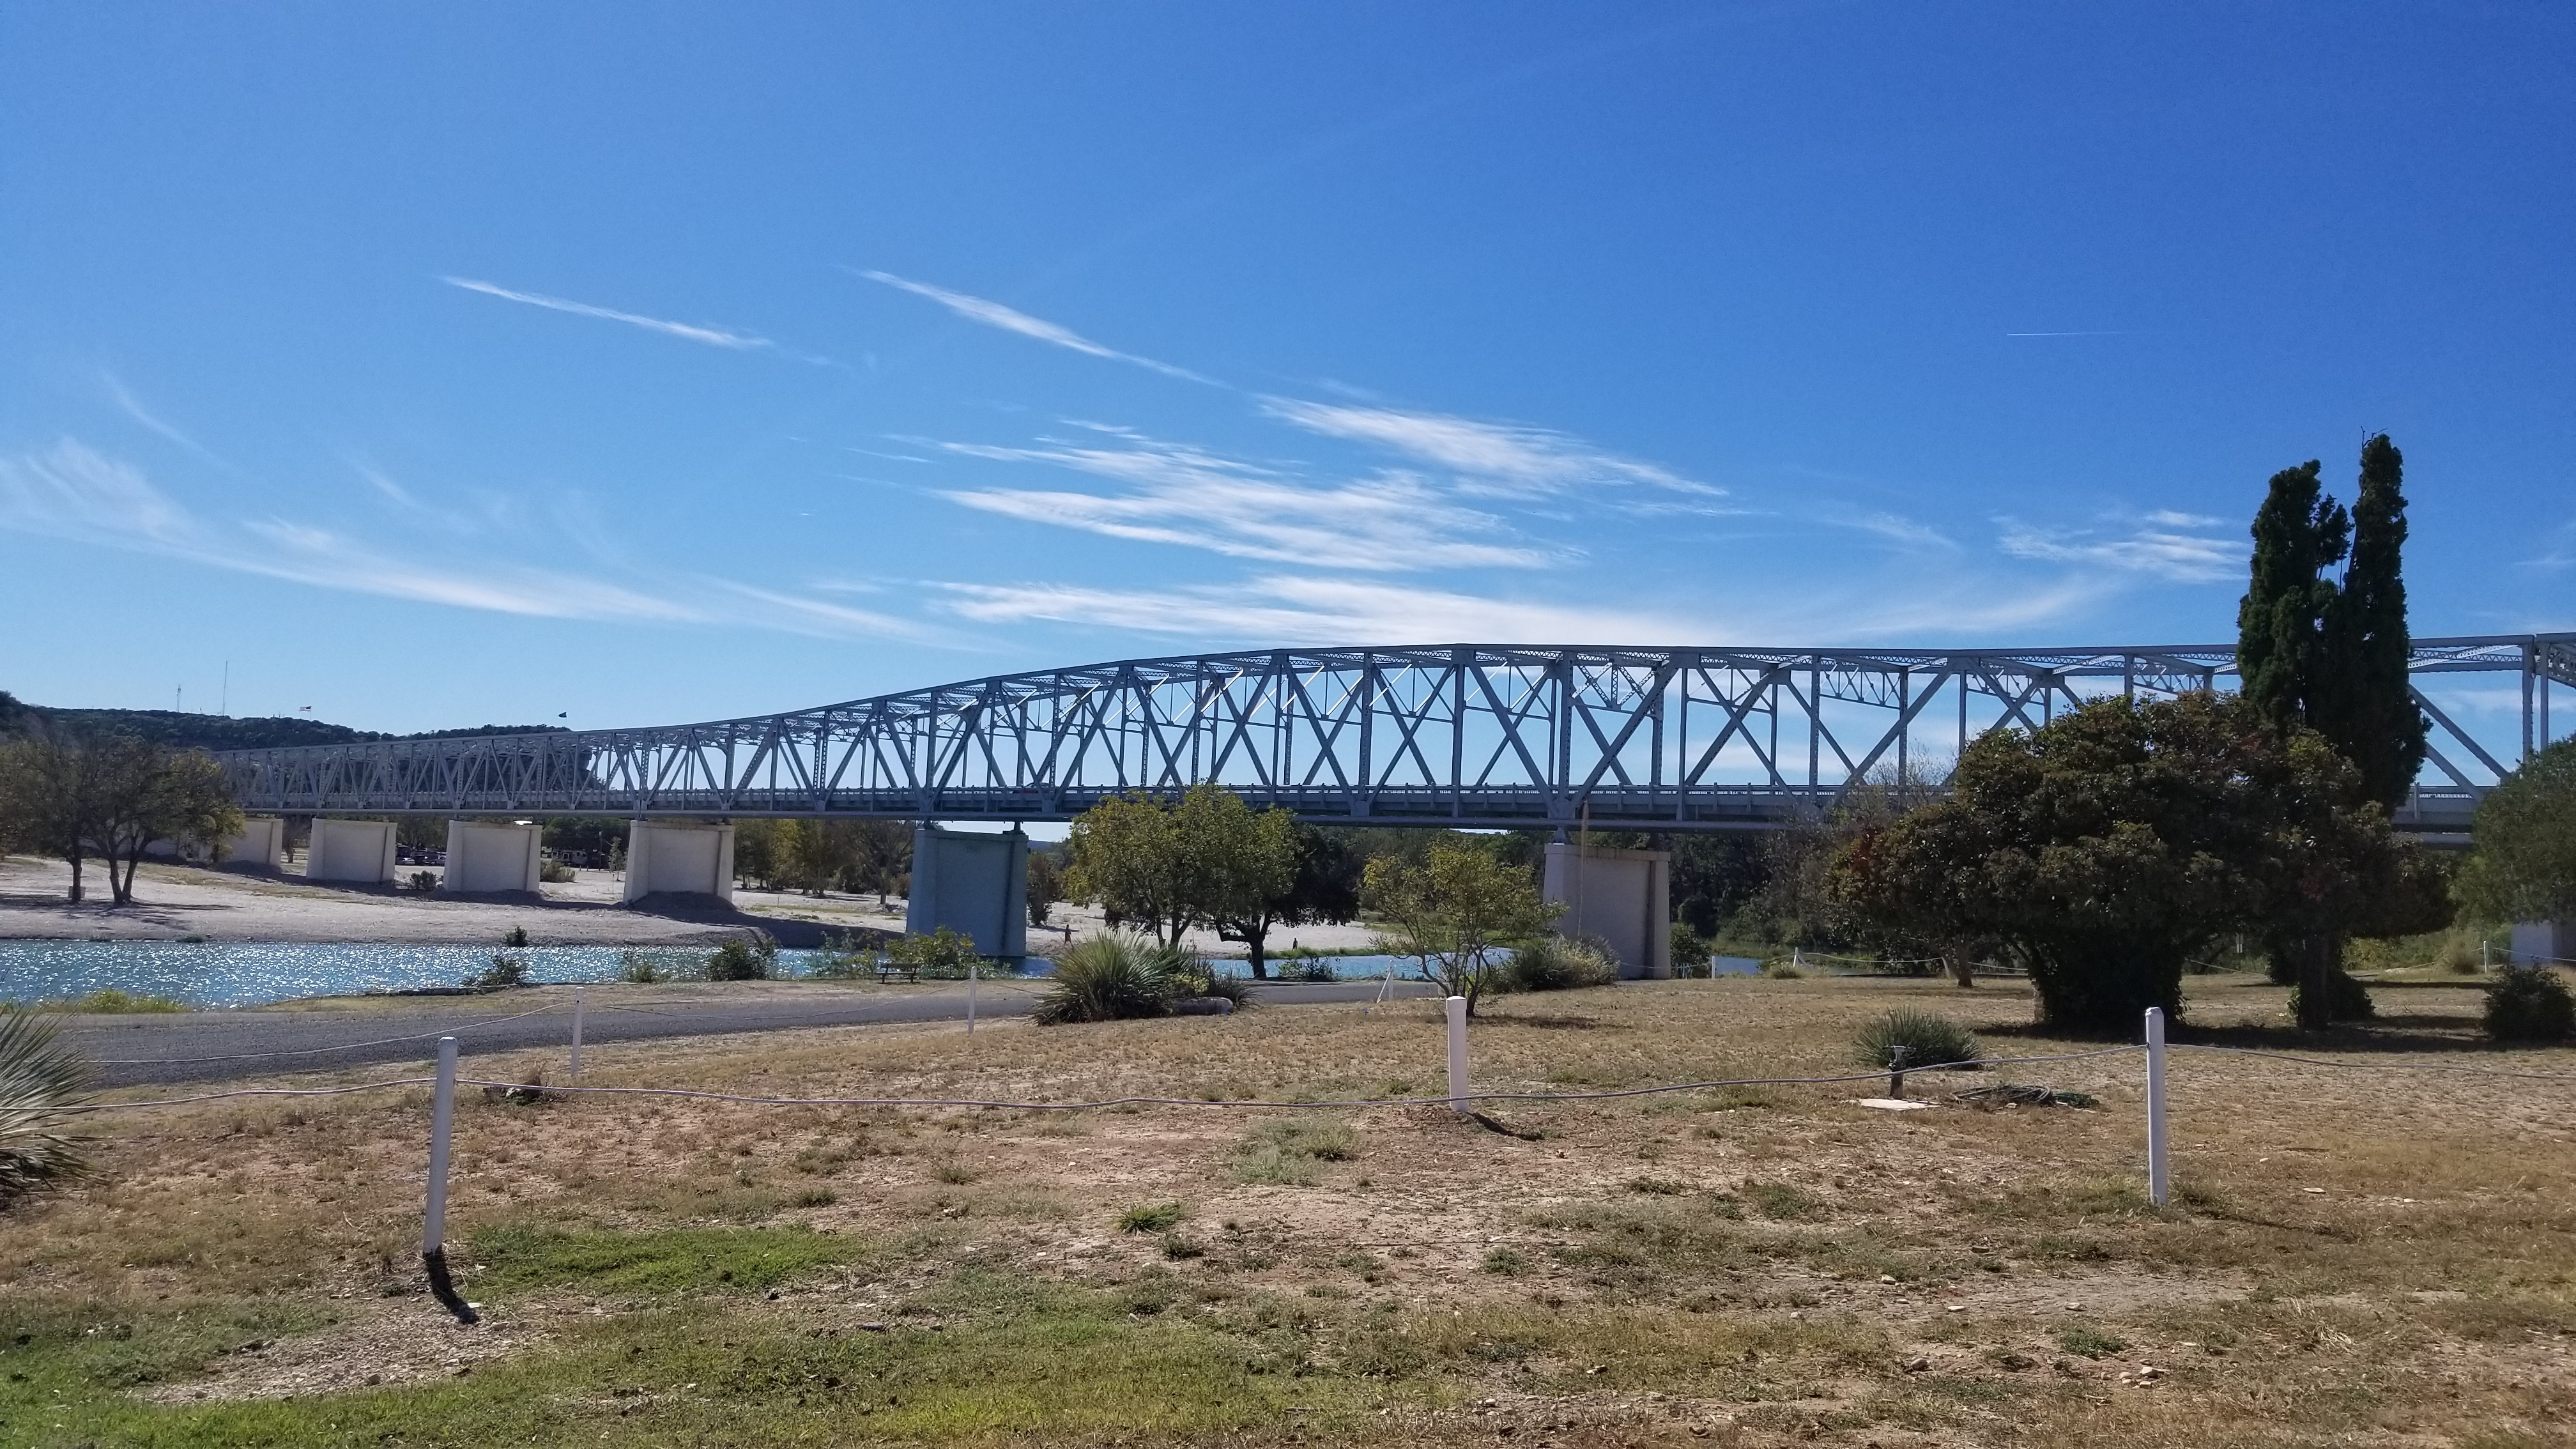 The Bridge of the South Llano River